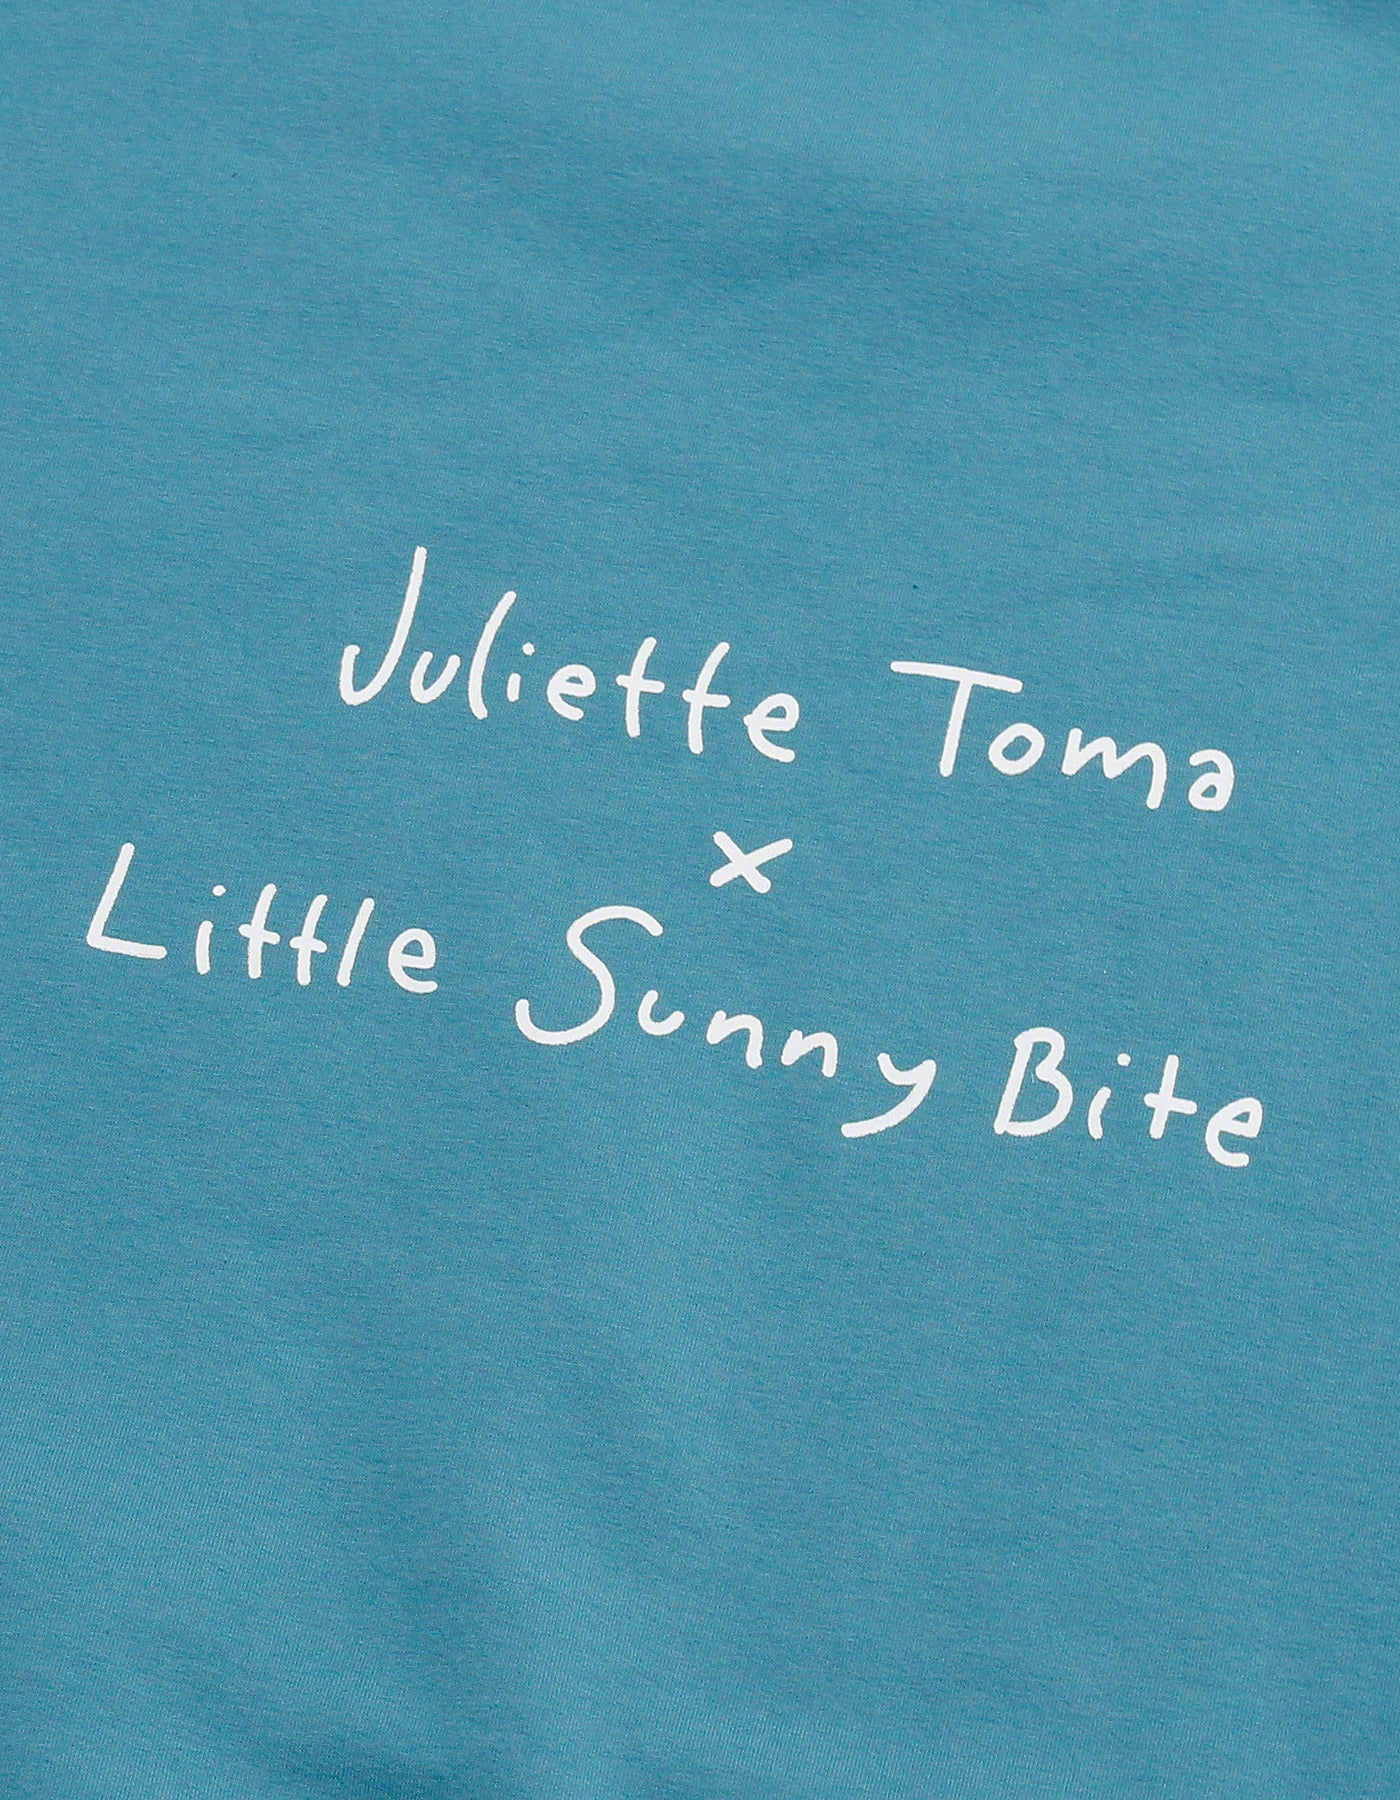 Very merry little sunny bite crew - favorite VHS sweat top / BLUE